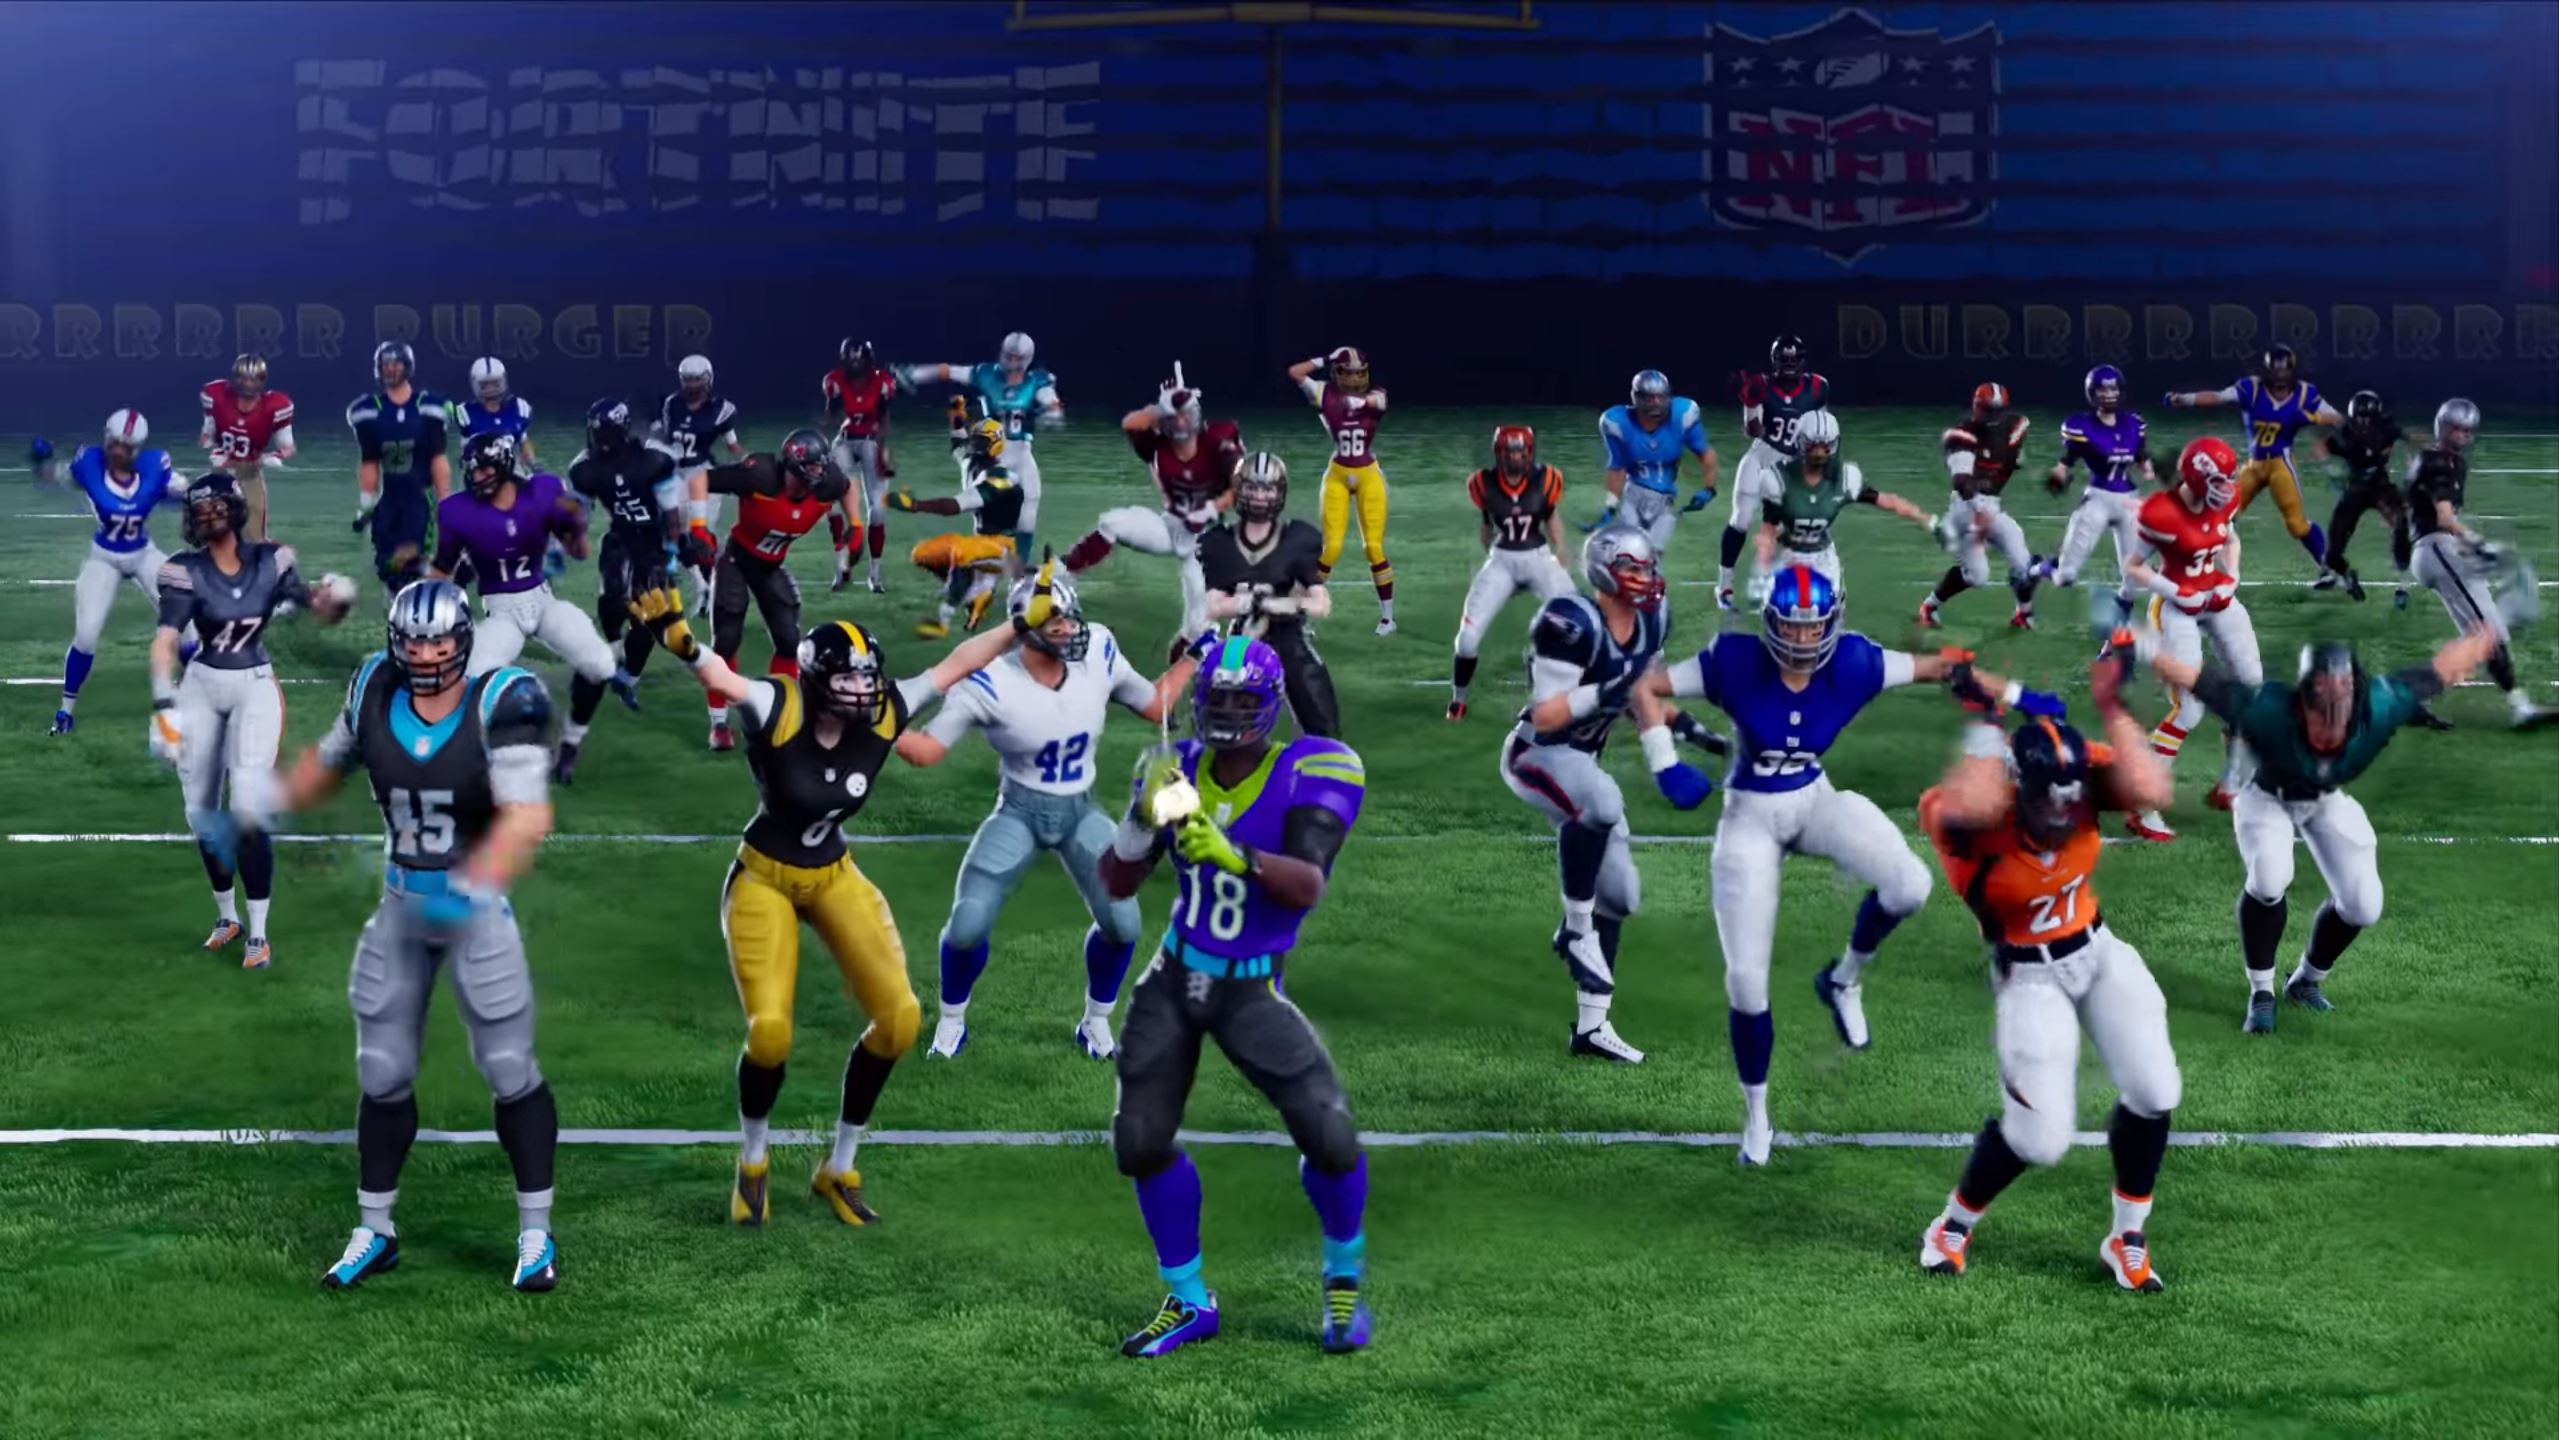 Fortnite NFL Super Bowl Skins